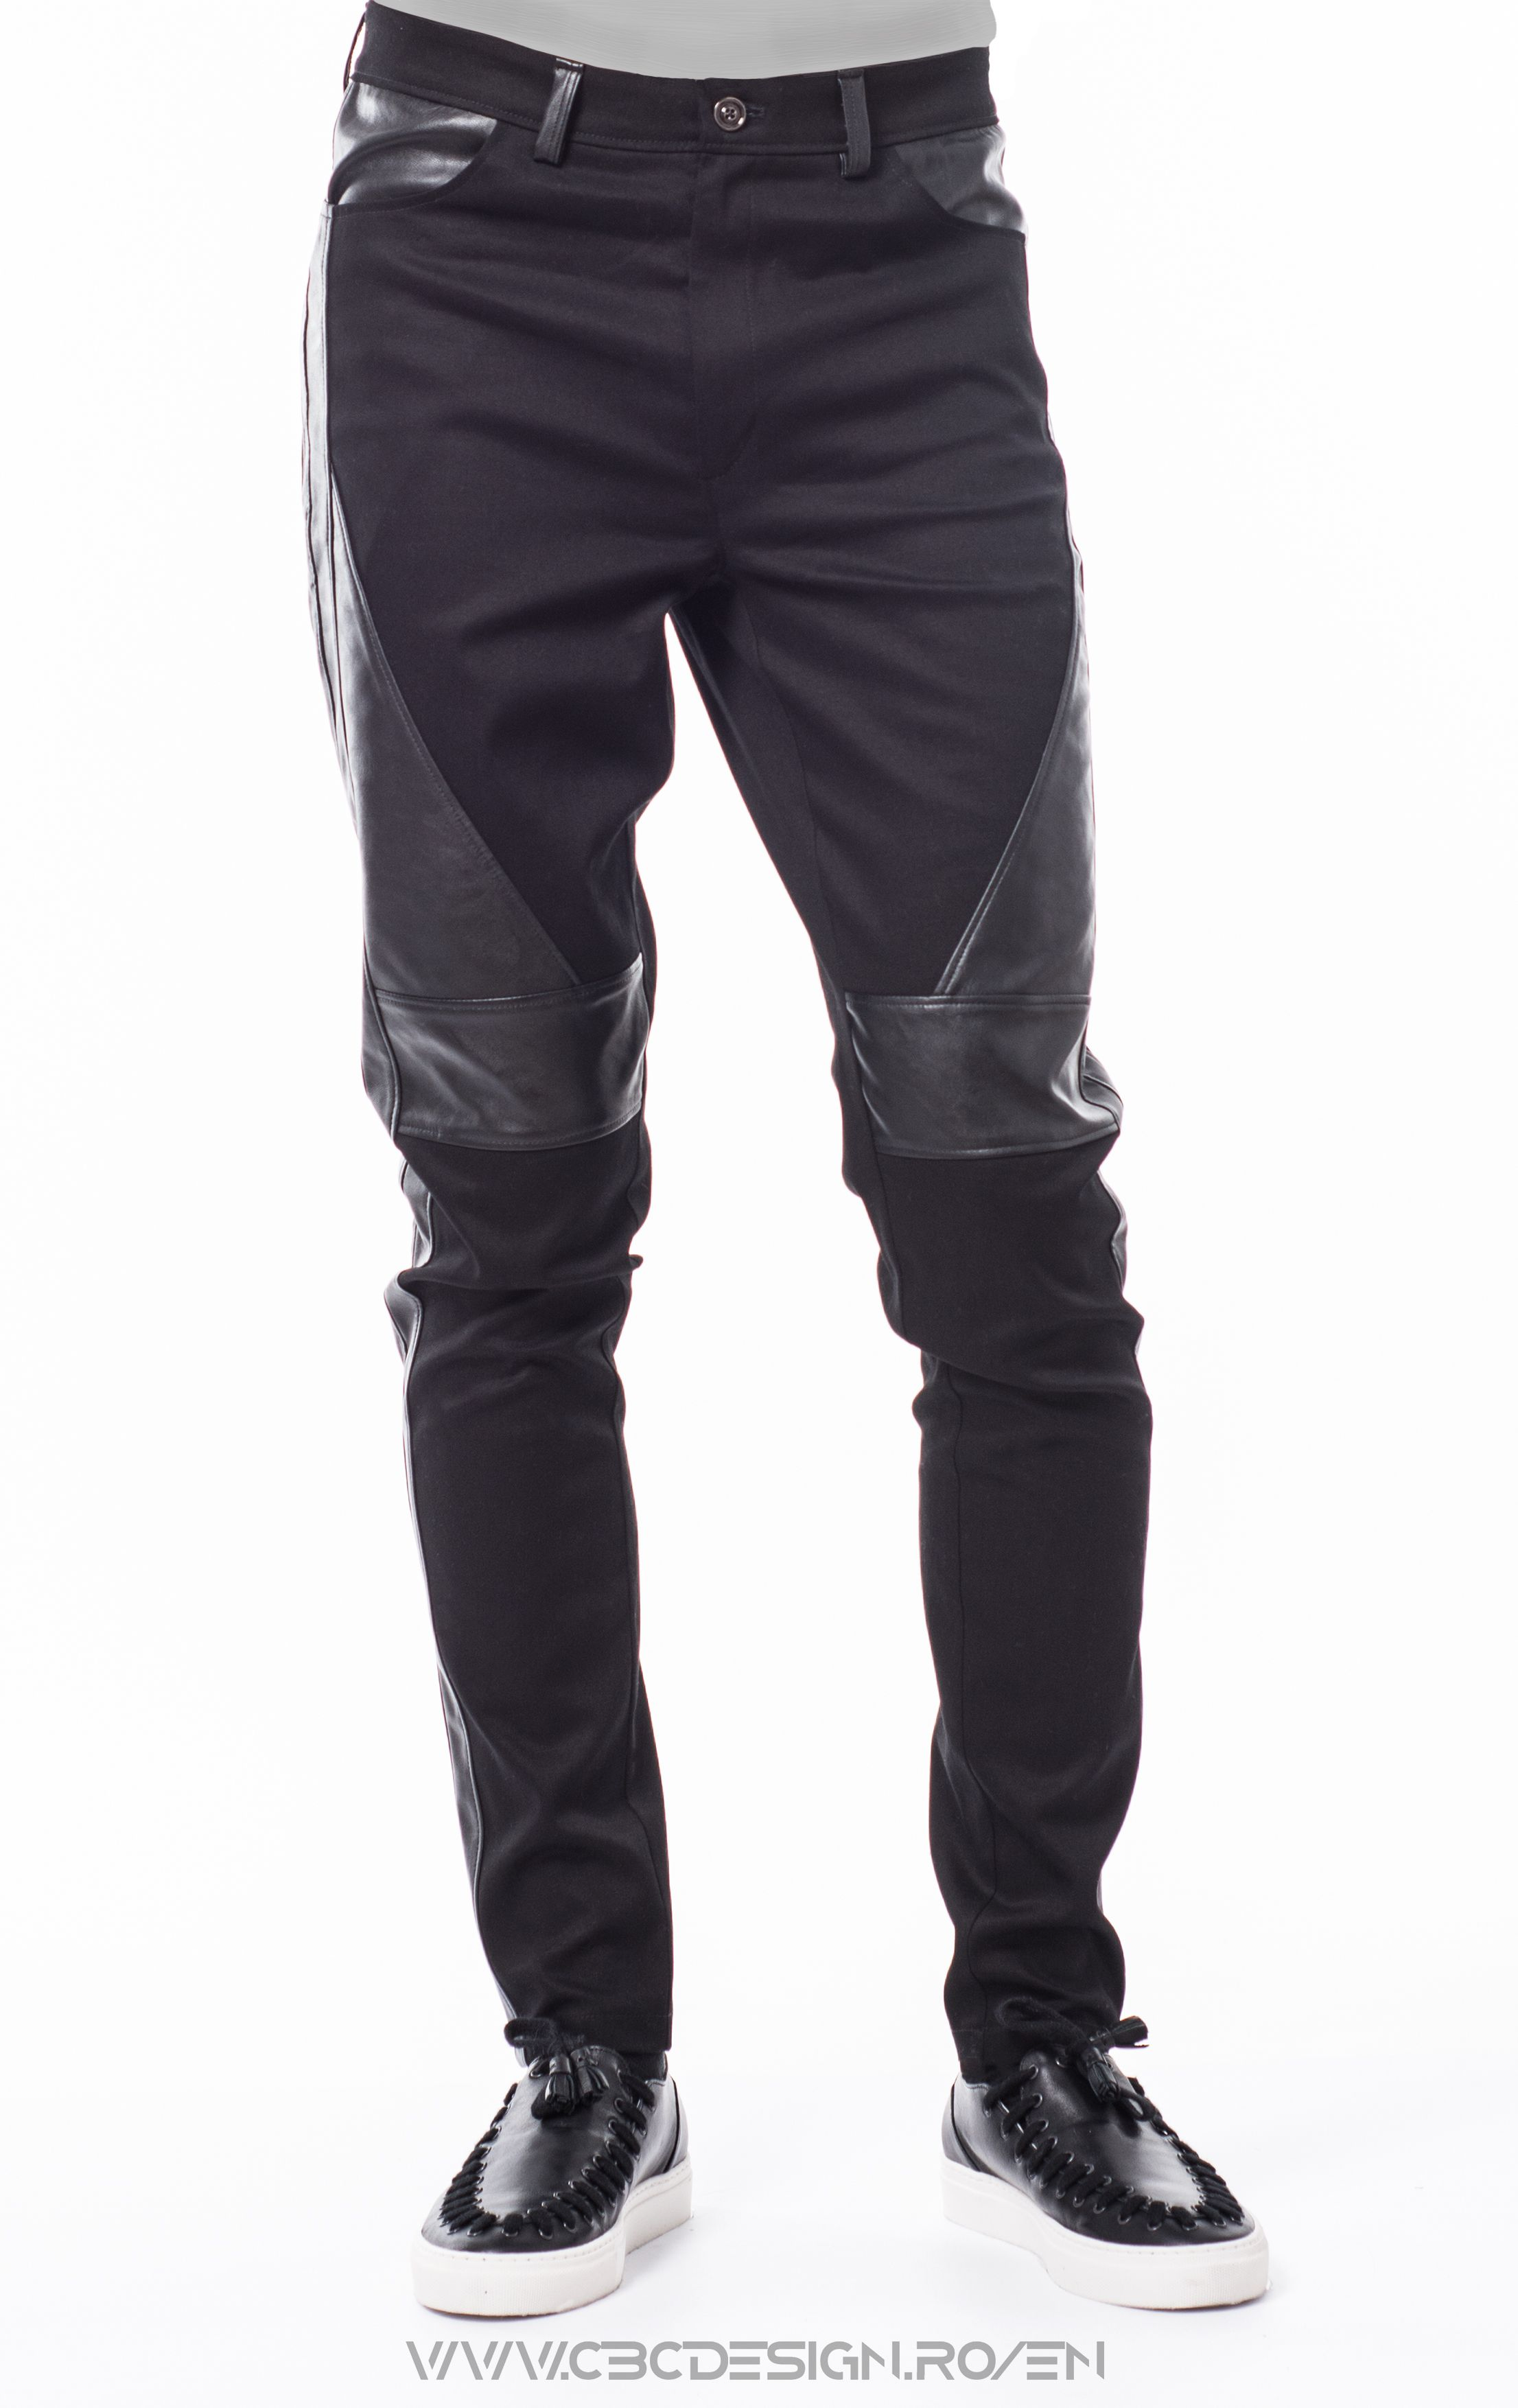 Long canvas fabric pants with eco leather insertions; front and back pockets, waistband with belt loops and button closure. Relaxed fit, slim leg, medium rise. The eco leather insertions are defined by the exposed stitching, together with the fabric they give off a biker-feel. They are a versatile item, suitable for casual events, worn with a warm pullover and boots. Or maybe with Vans and a bomber jacket for a sports vibe.